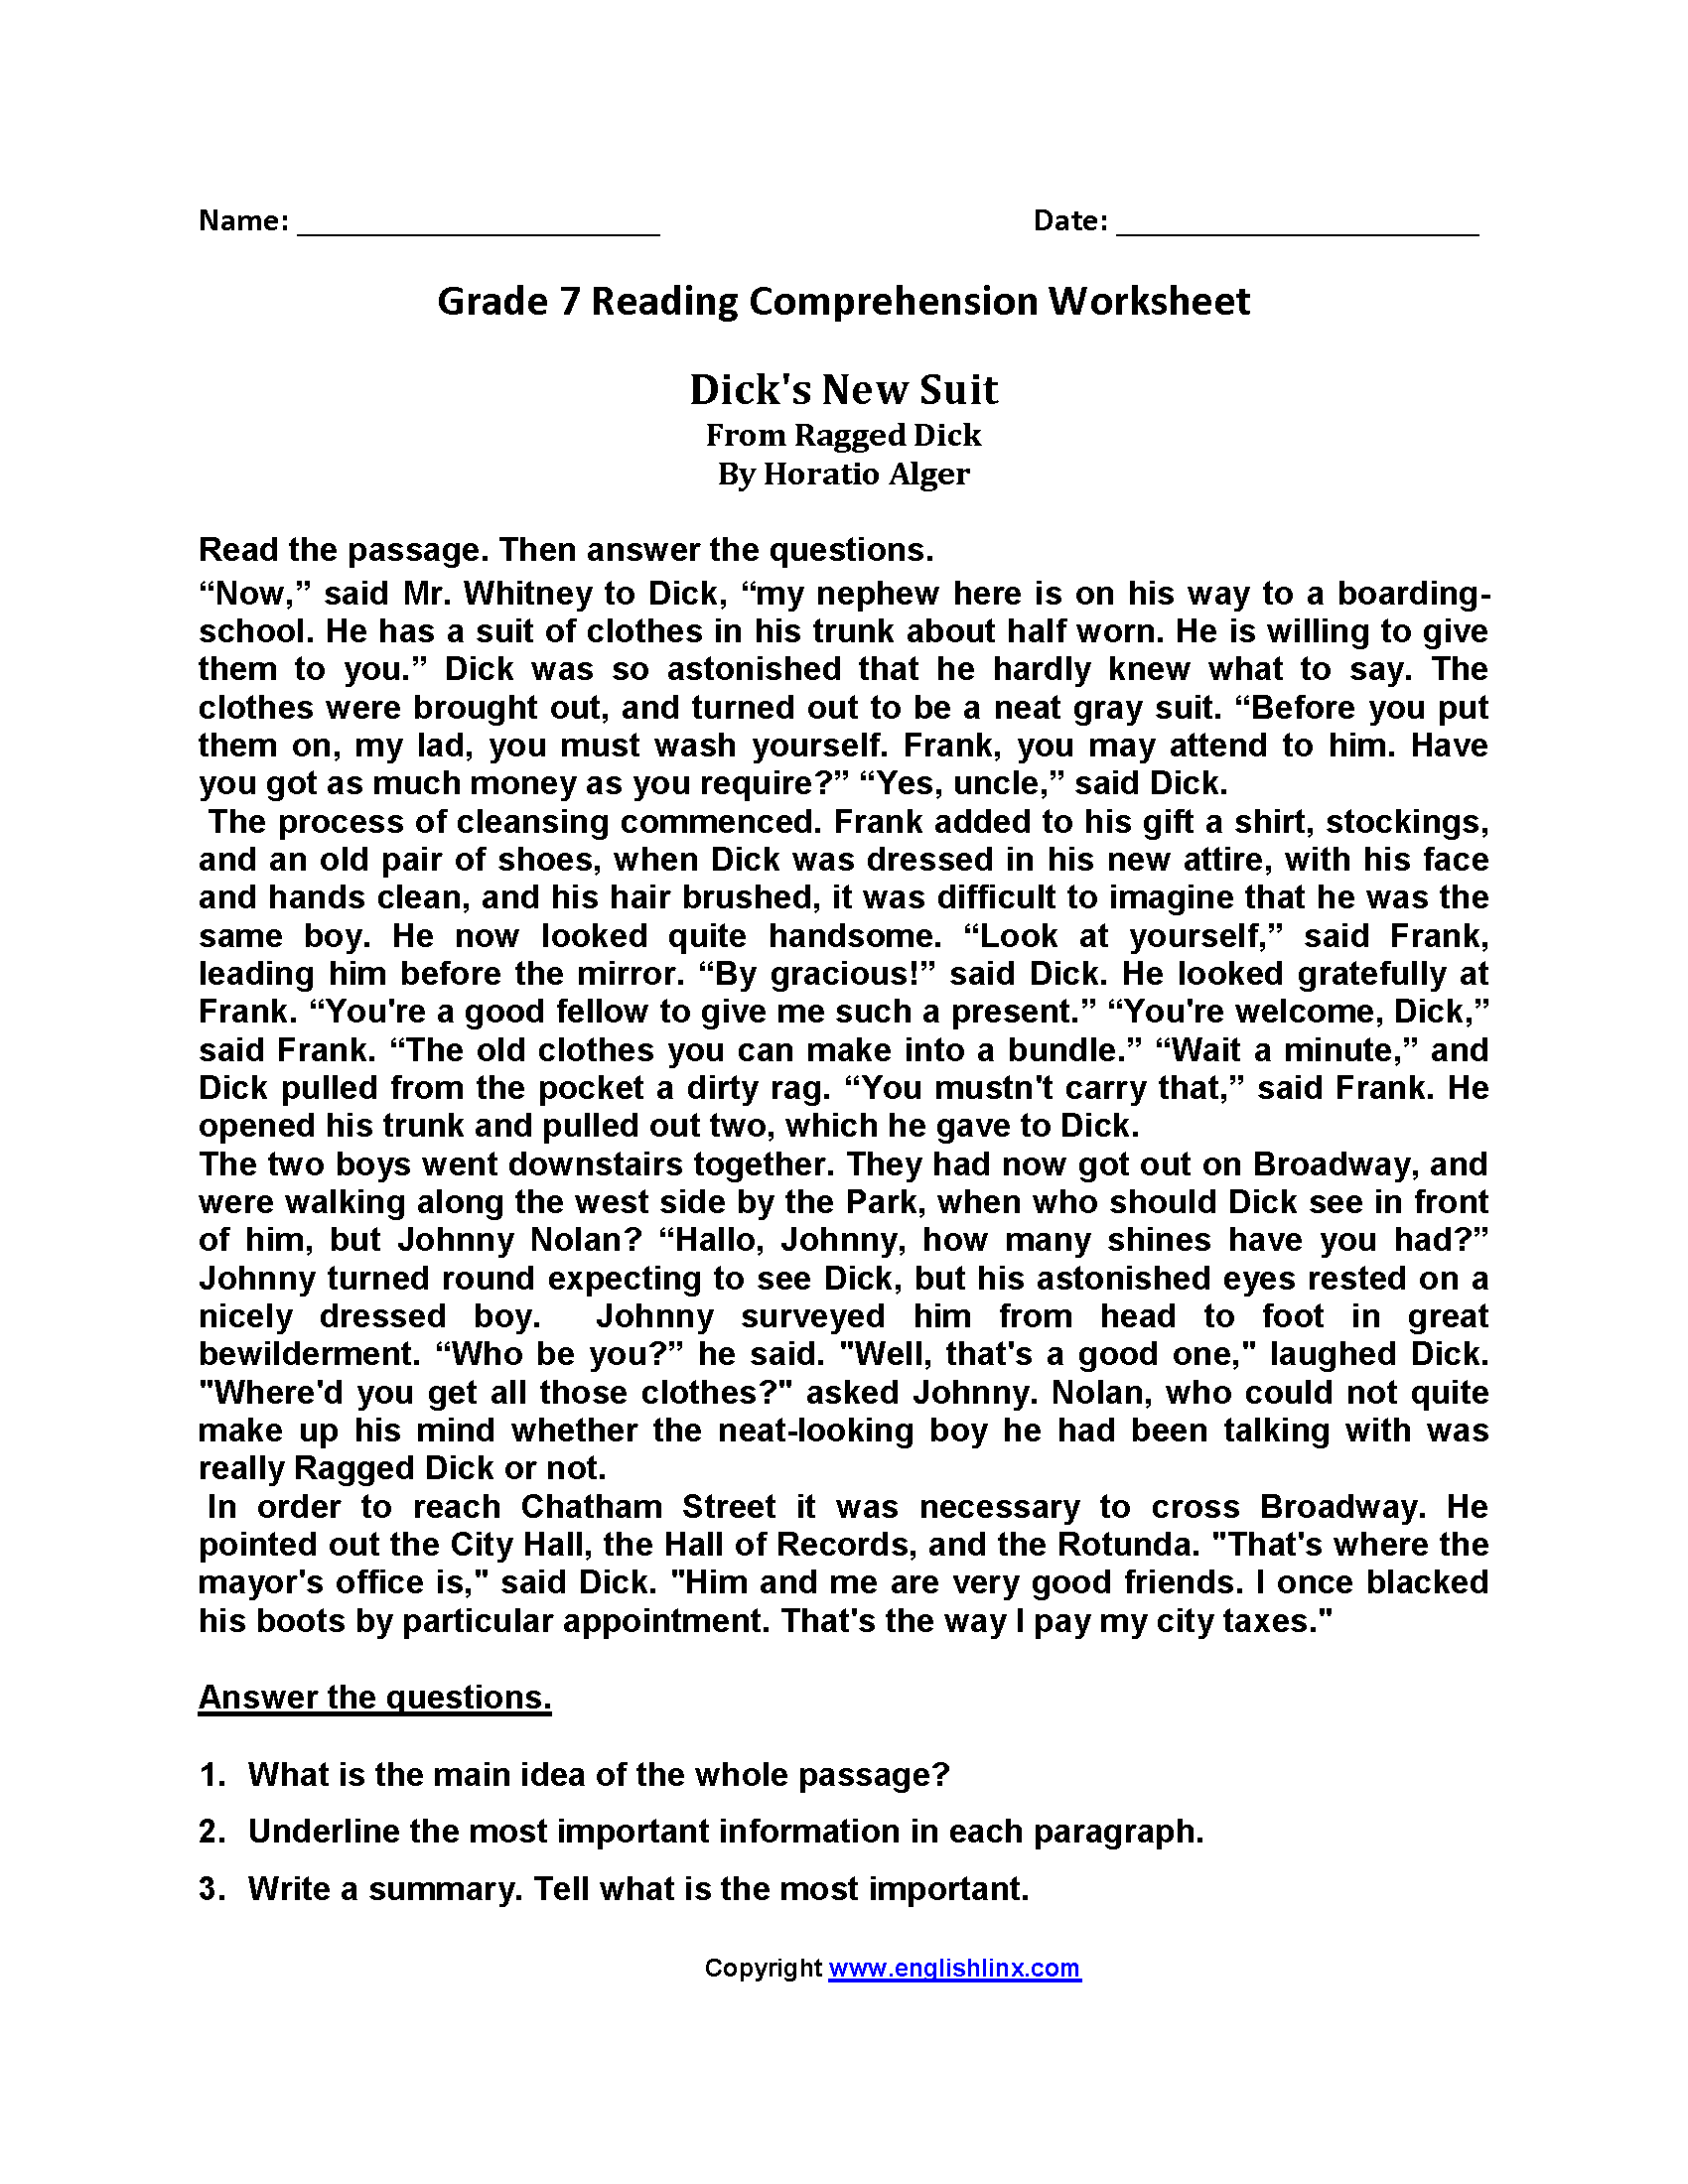 Worksheet Reading Worksheets For 7th Grade Grass Fedjp